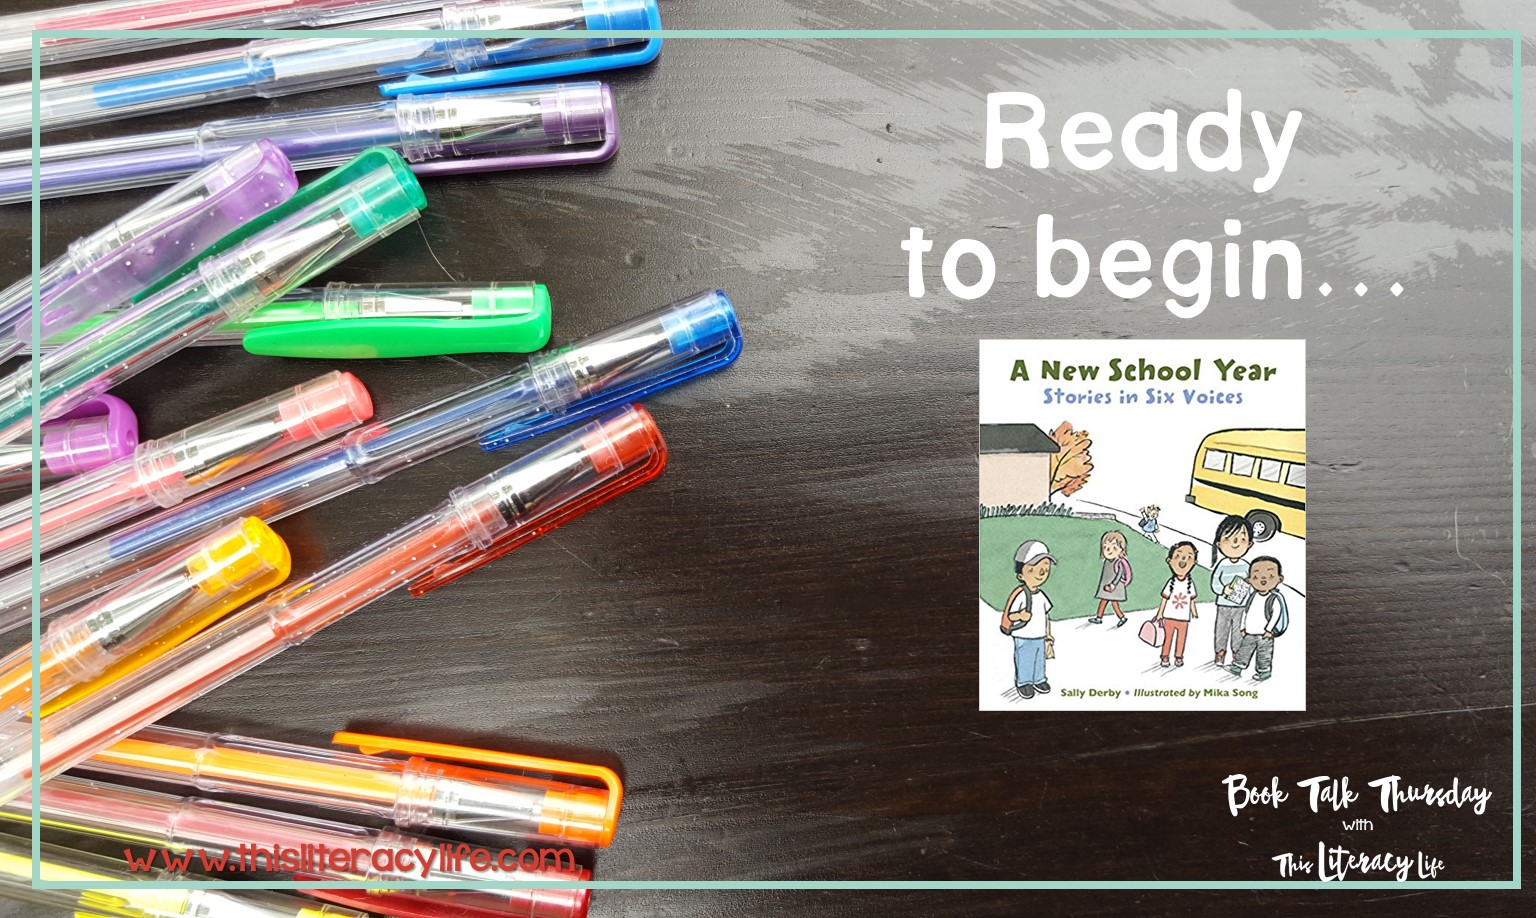 Starting a new school year can be tough for many students. The Book A New School Year will help many students get through their first day of school.